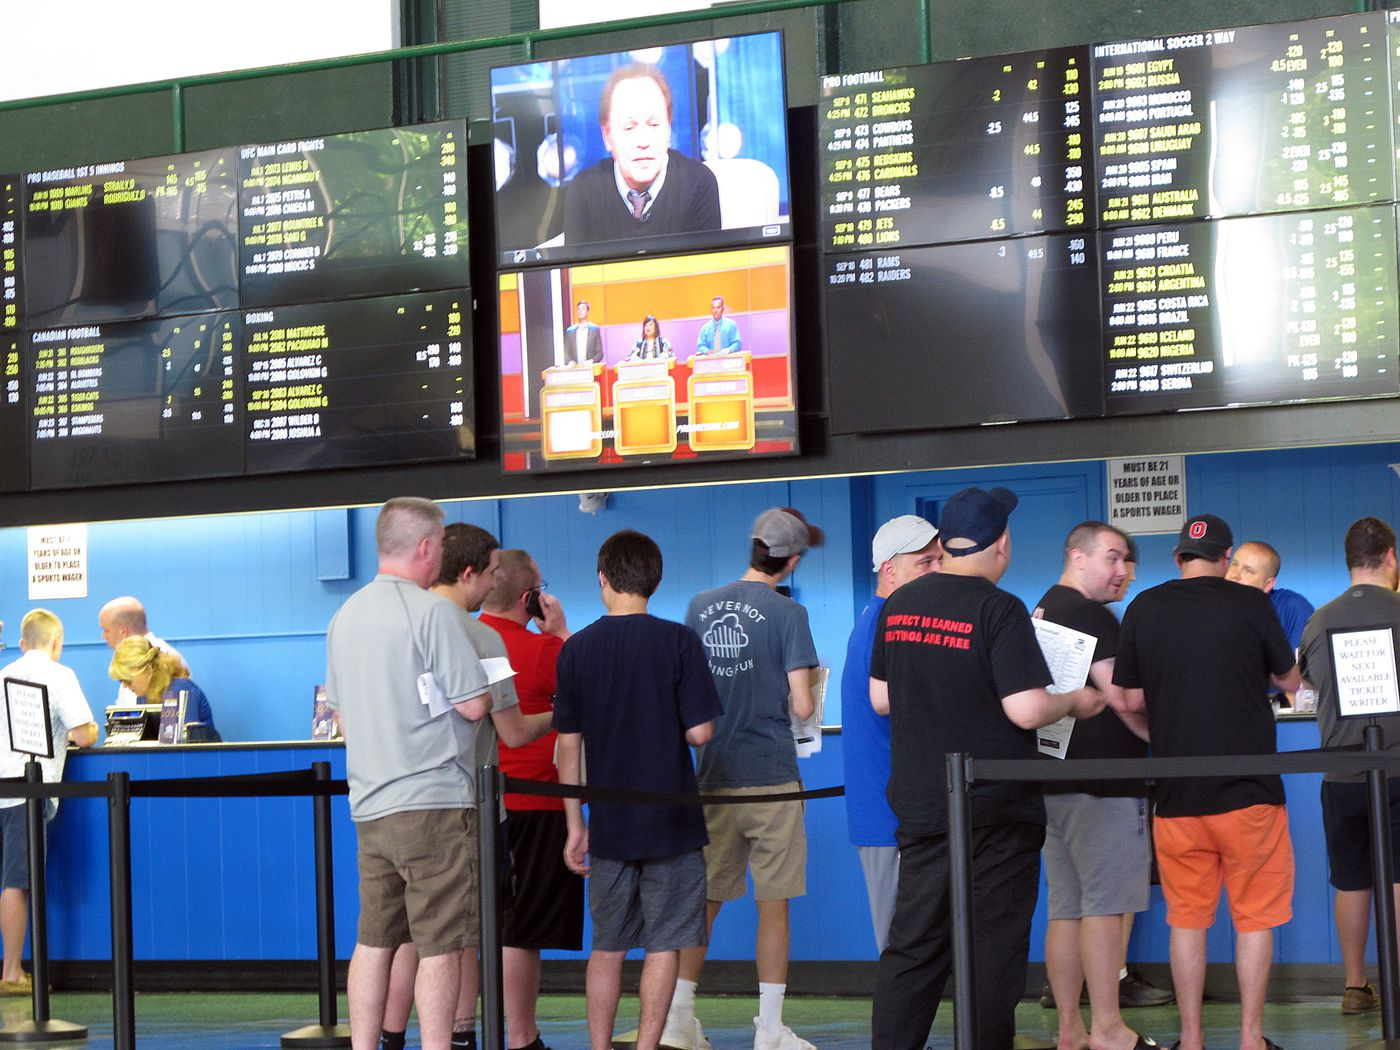 Monmouth park racetrack sports betting bmw pga golf betting tips